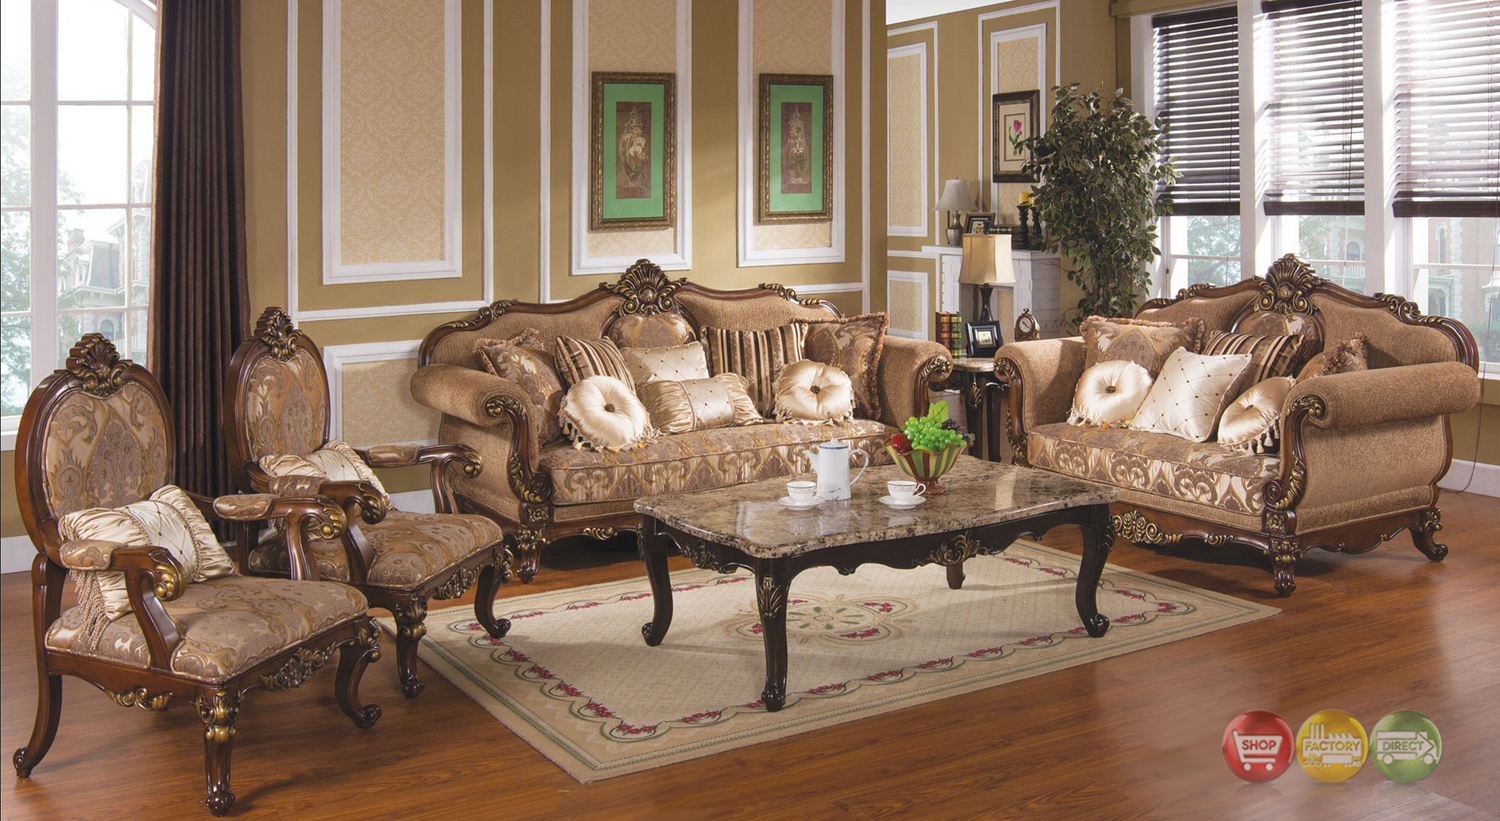 Living Room And Bedroom Furniture Sets Michael Amini Cortina Luxury Bedroom Furniture Set Honey Walnut